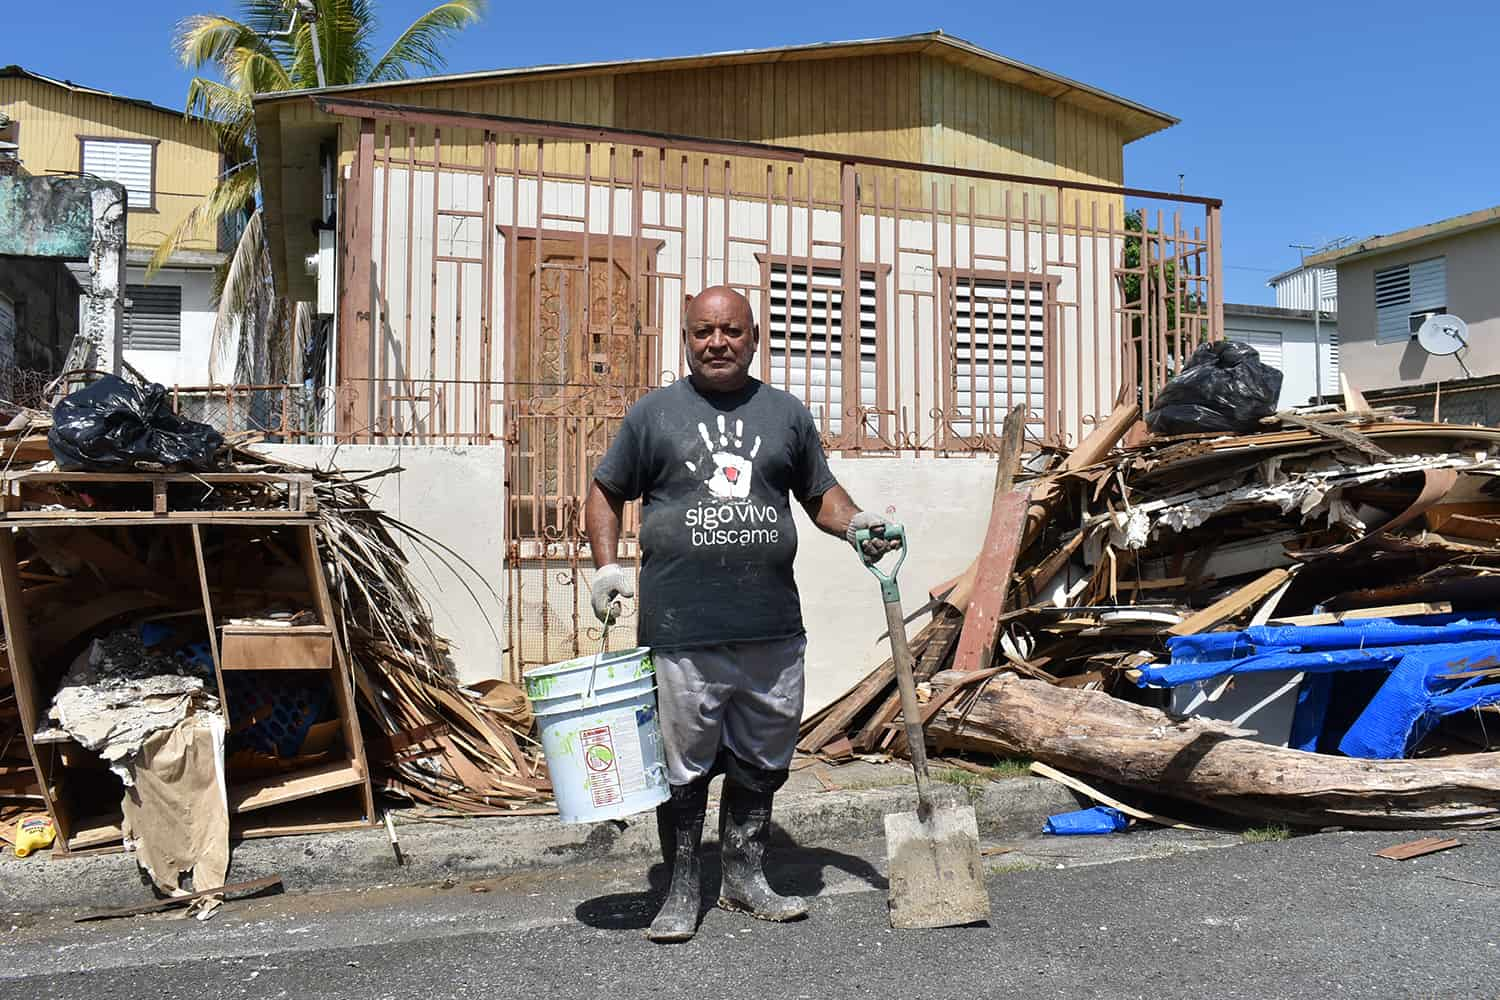 A man stands in the street in front of a house, holding a bucket and shovel